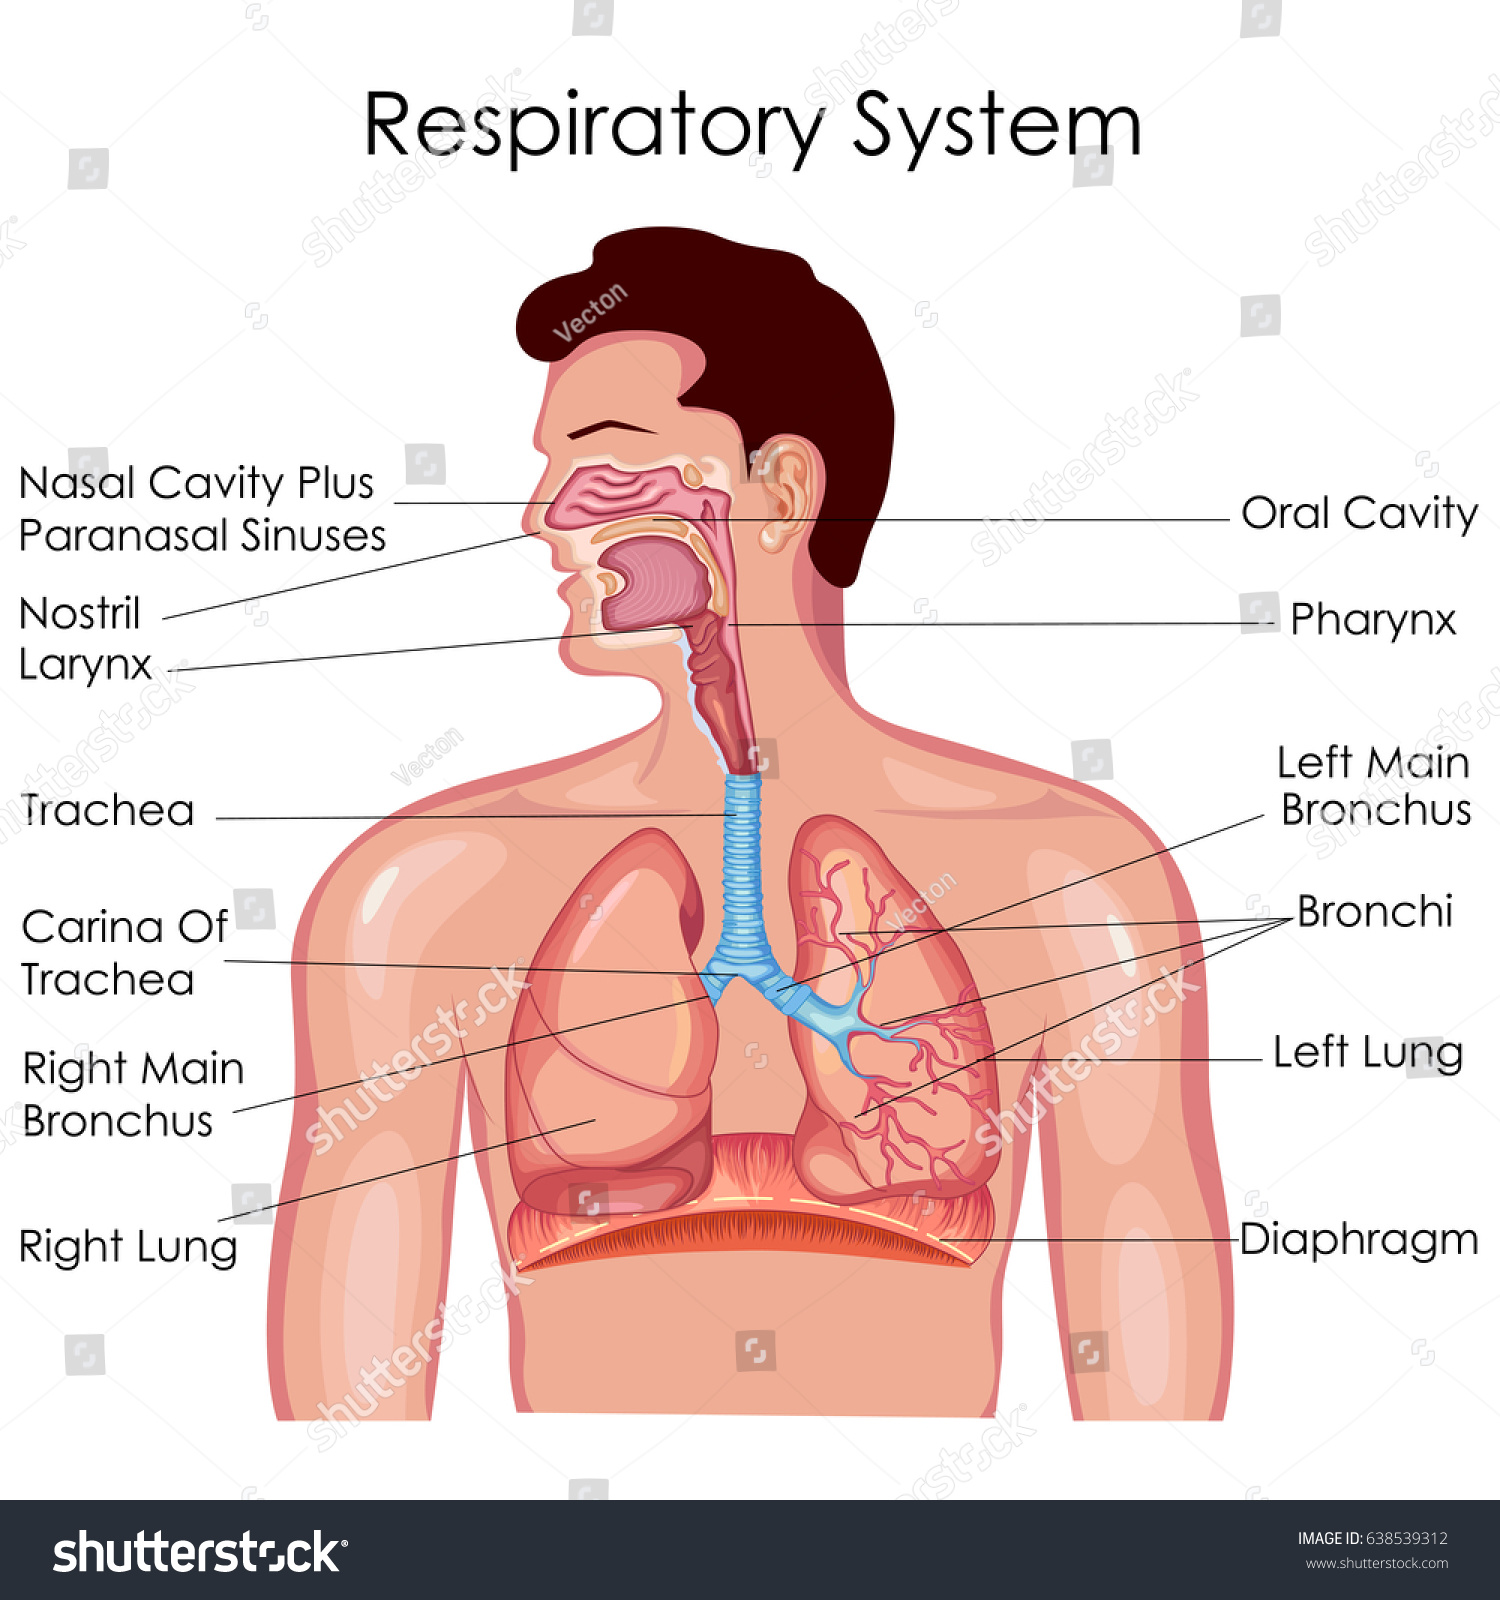 Medical education chart biology respiratory system stock vector medical education chart of biology for respiratory system diagram vector illustration ccuart Choice Image